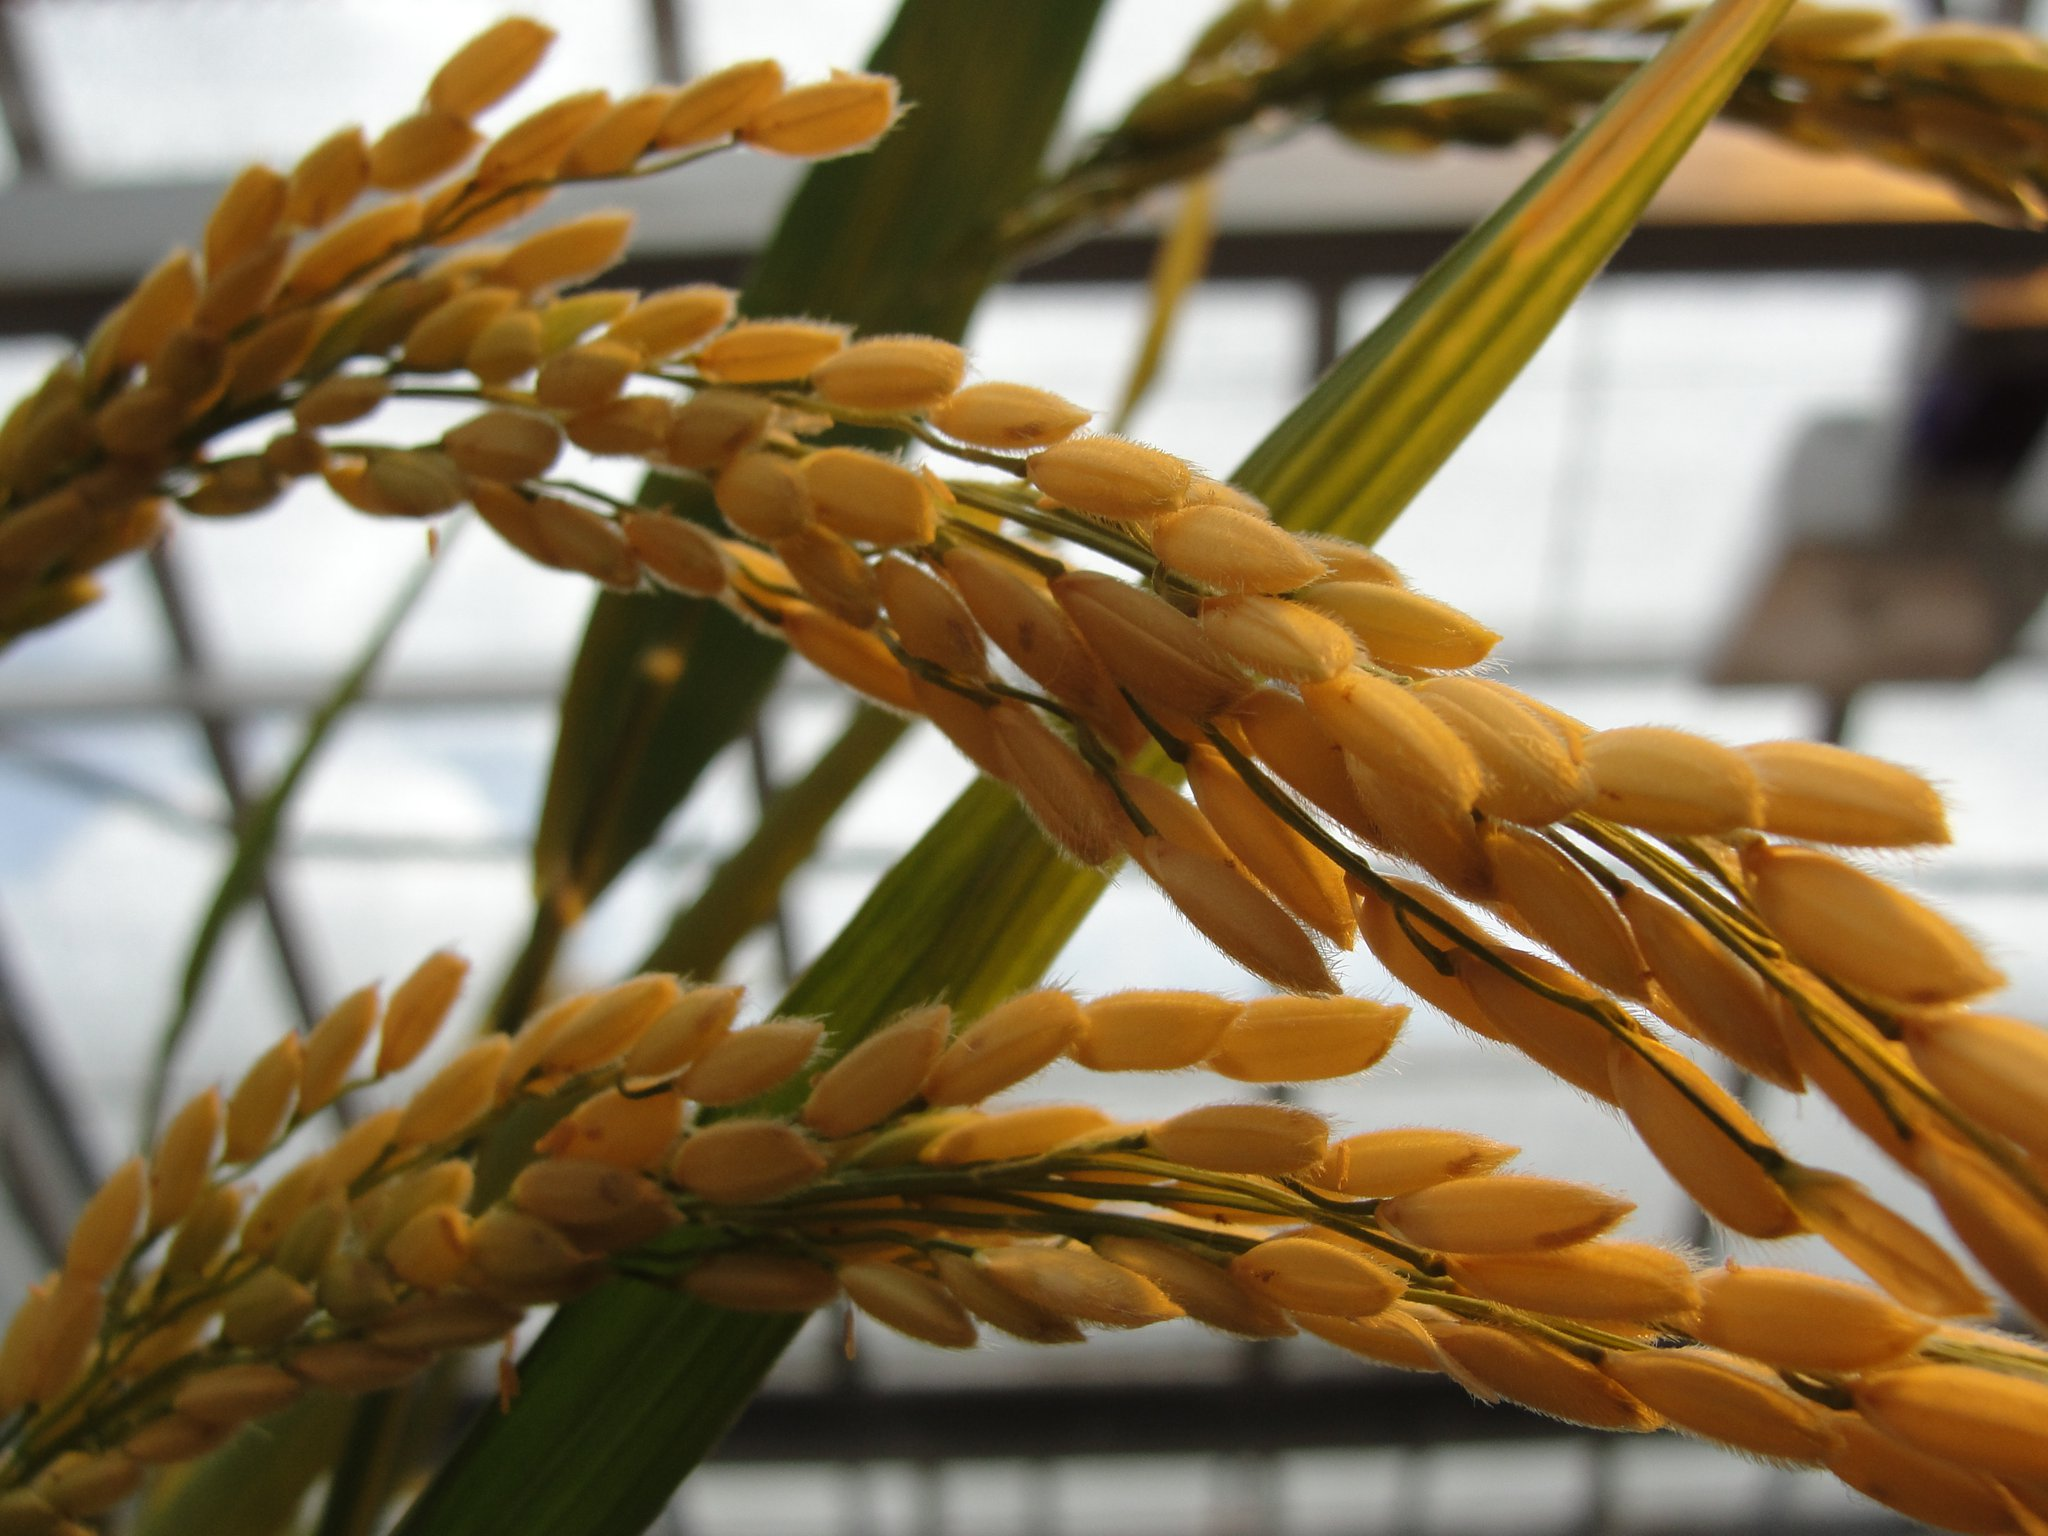 Close-up of growing rice grains